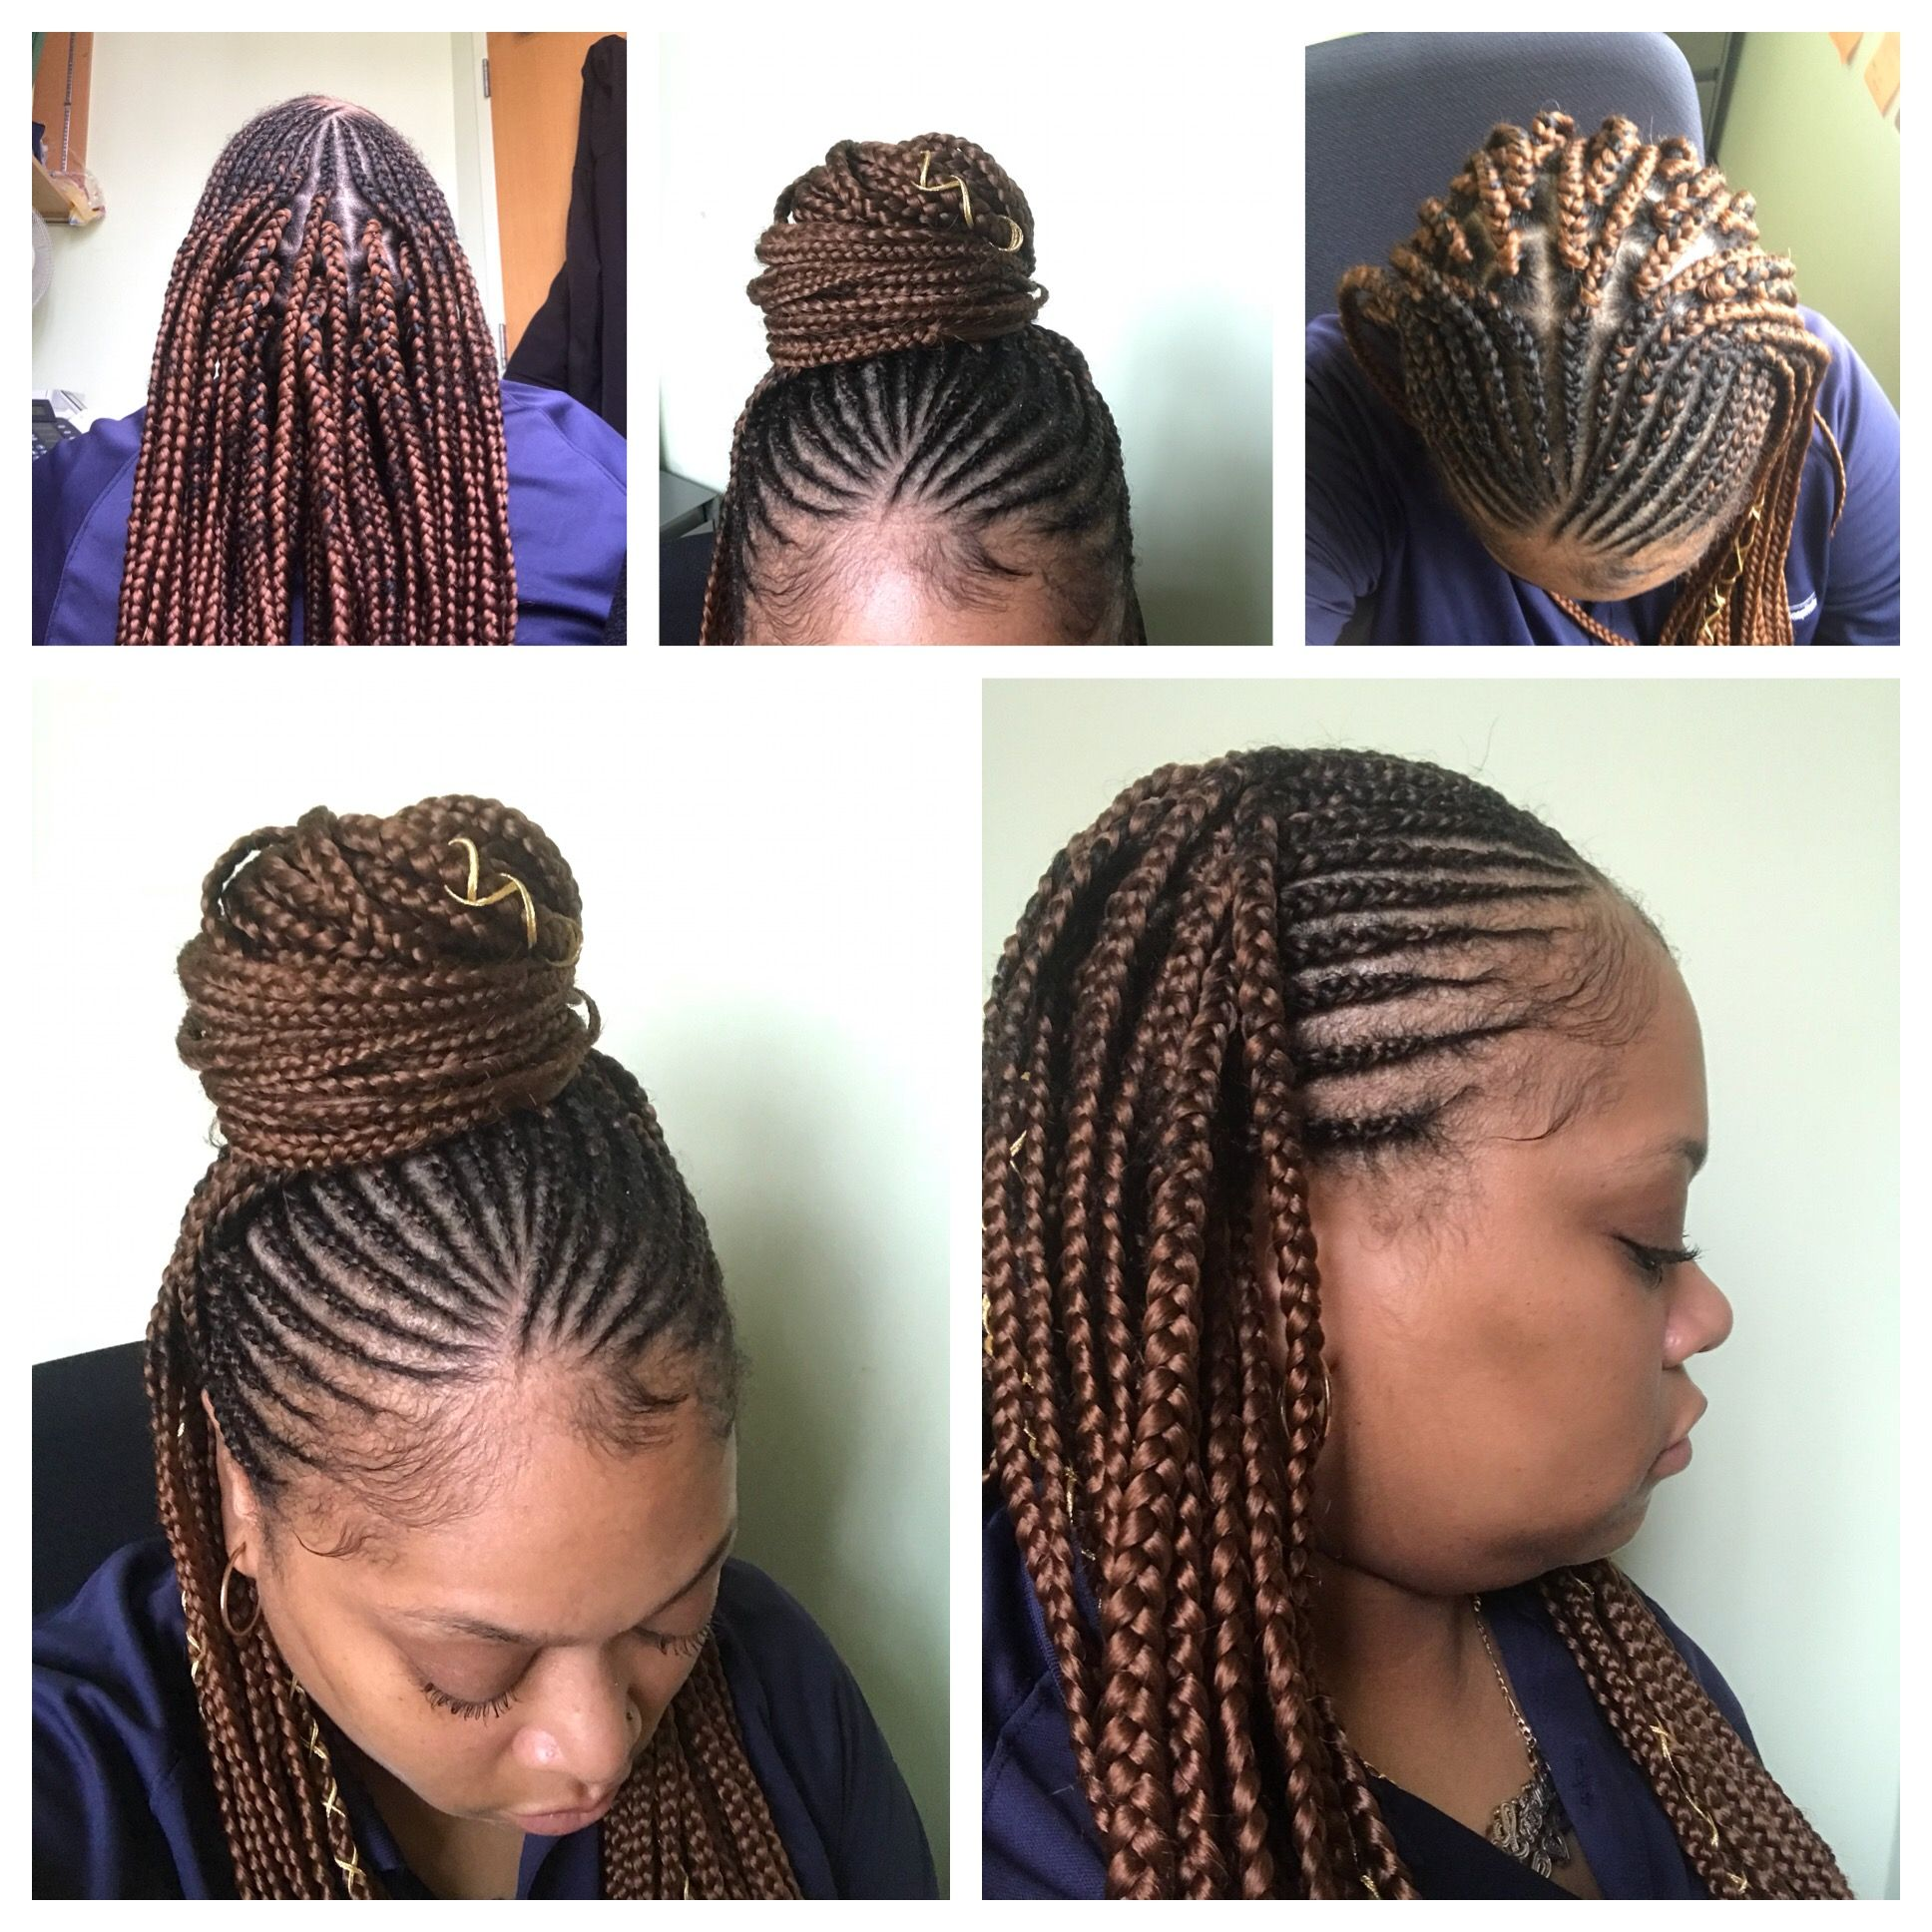 Graduation Hair Hair Styles Braided Hairstyles Easy Graduation Hairstyles